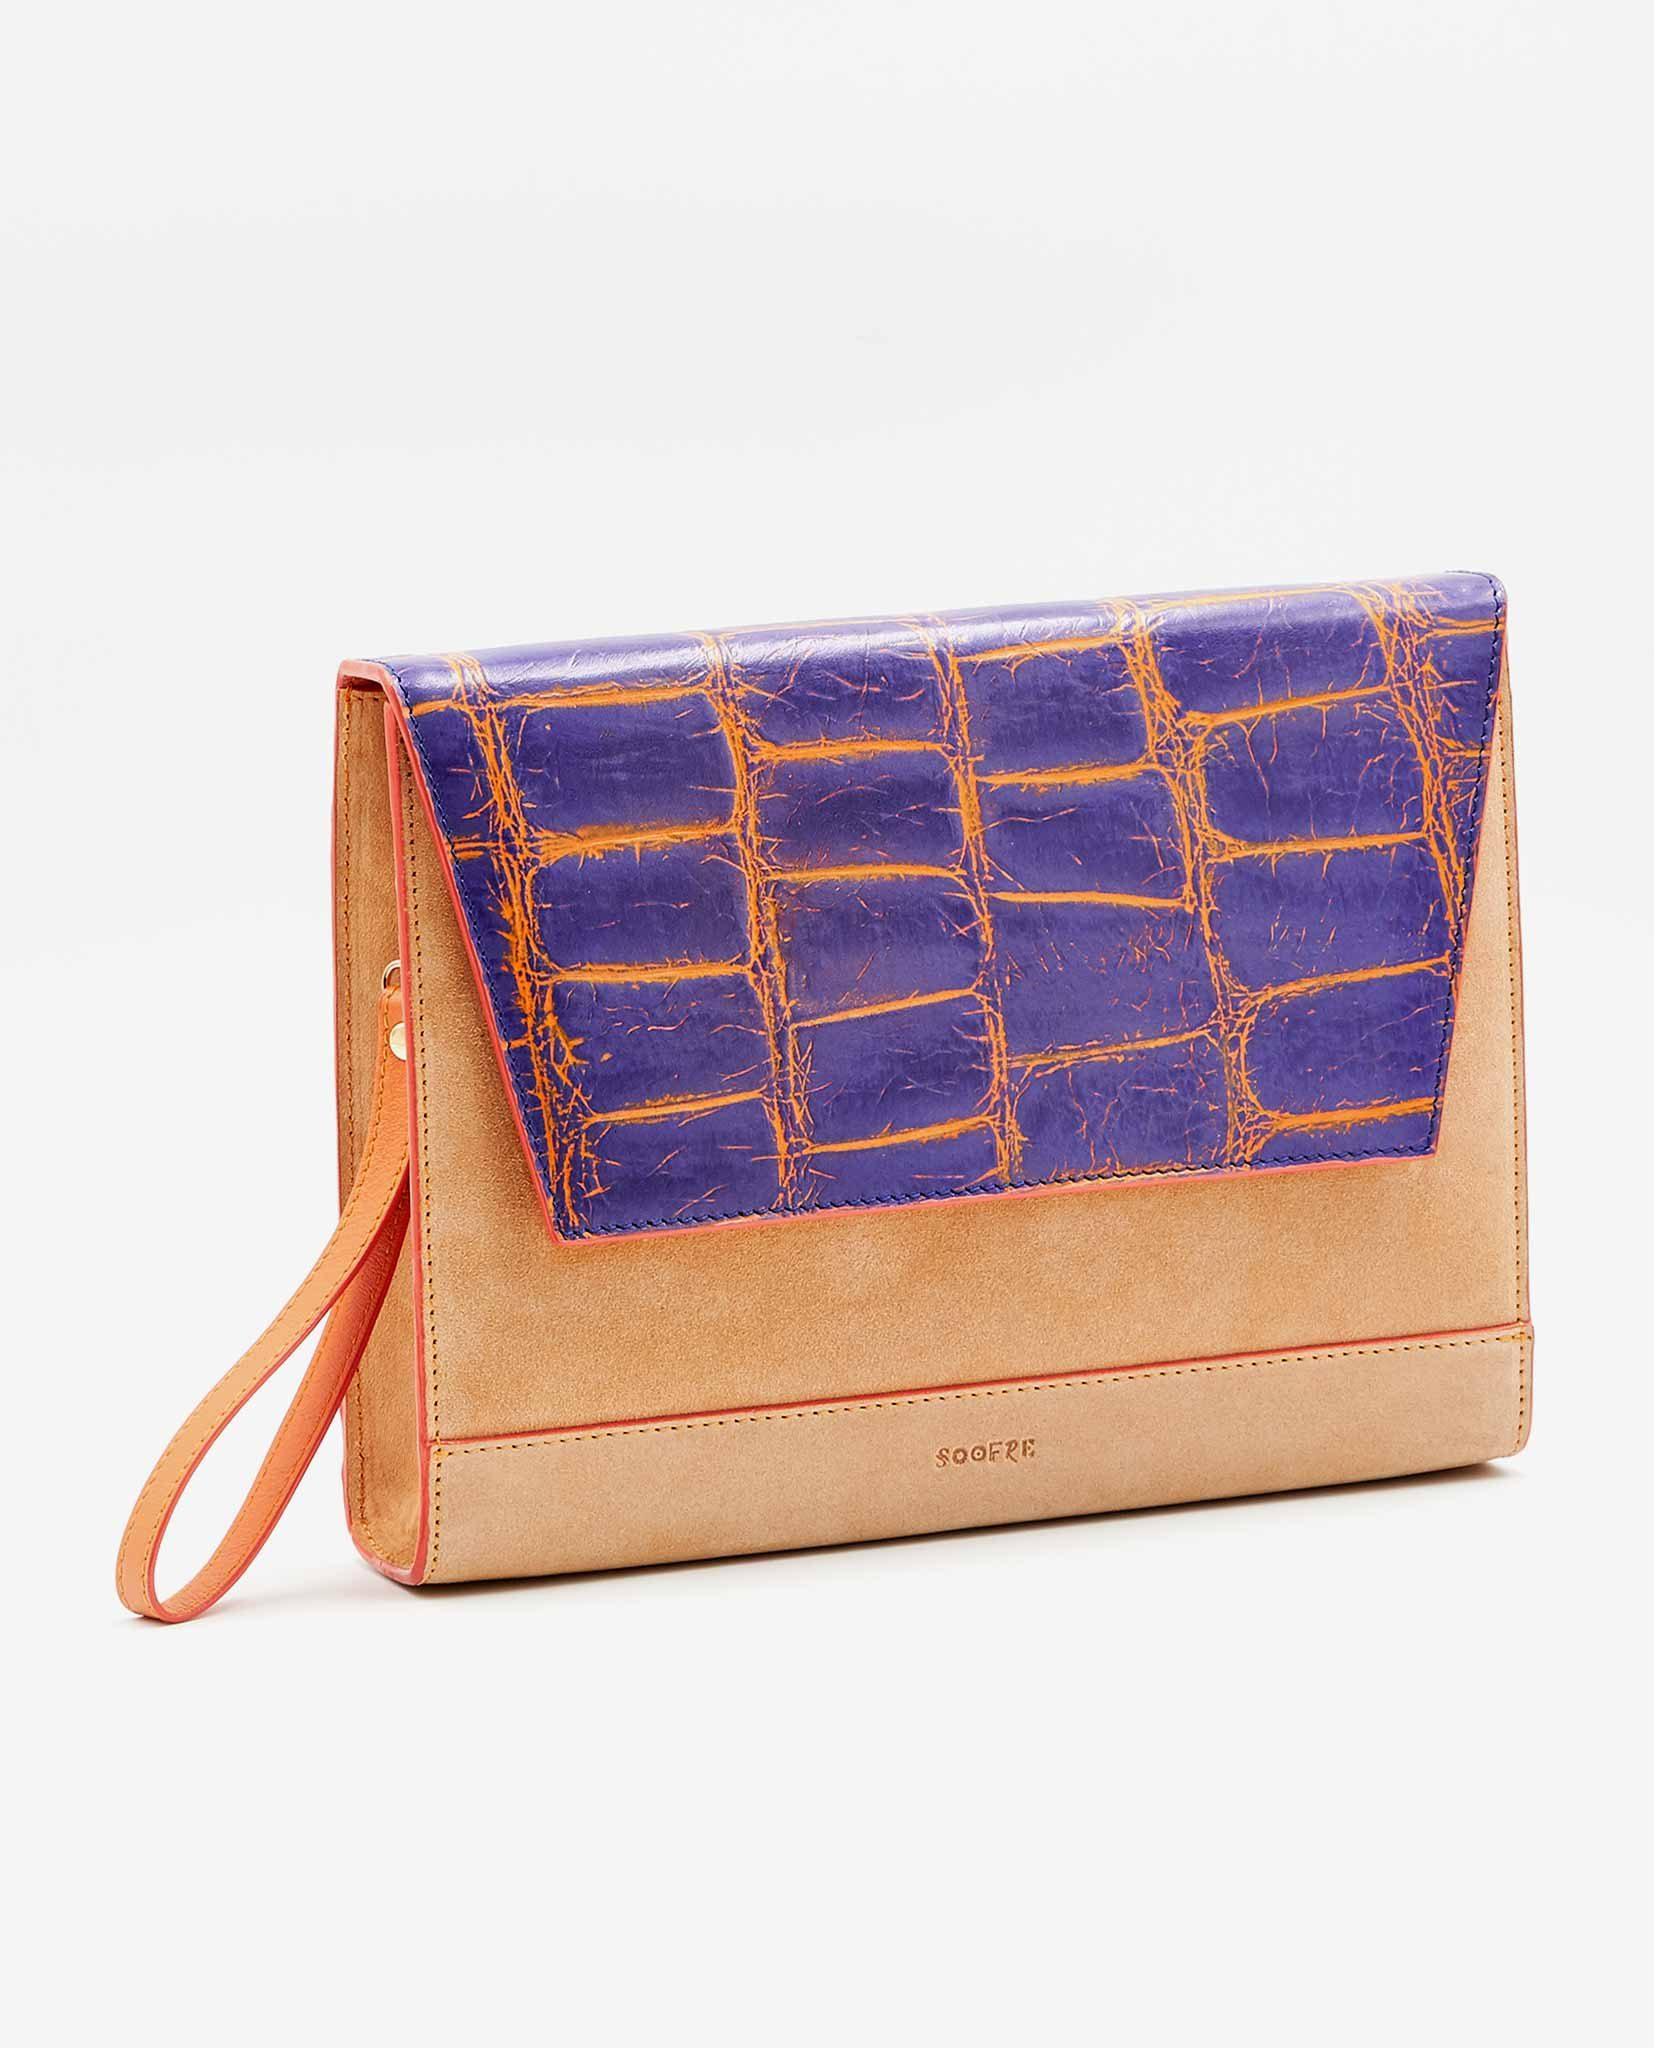 SOOFRE-Berlin-unique-Clutch-croco-purple-orange-apricot-SIDES